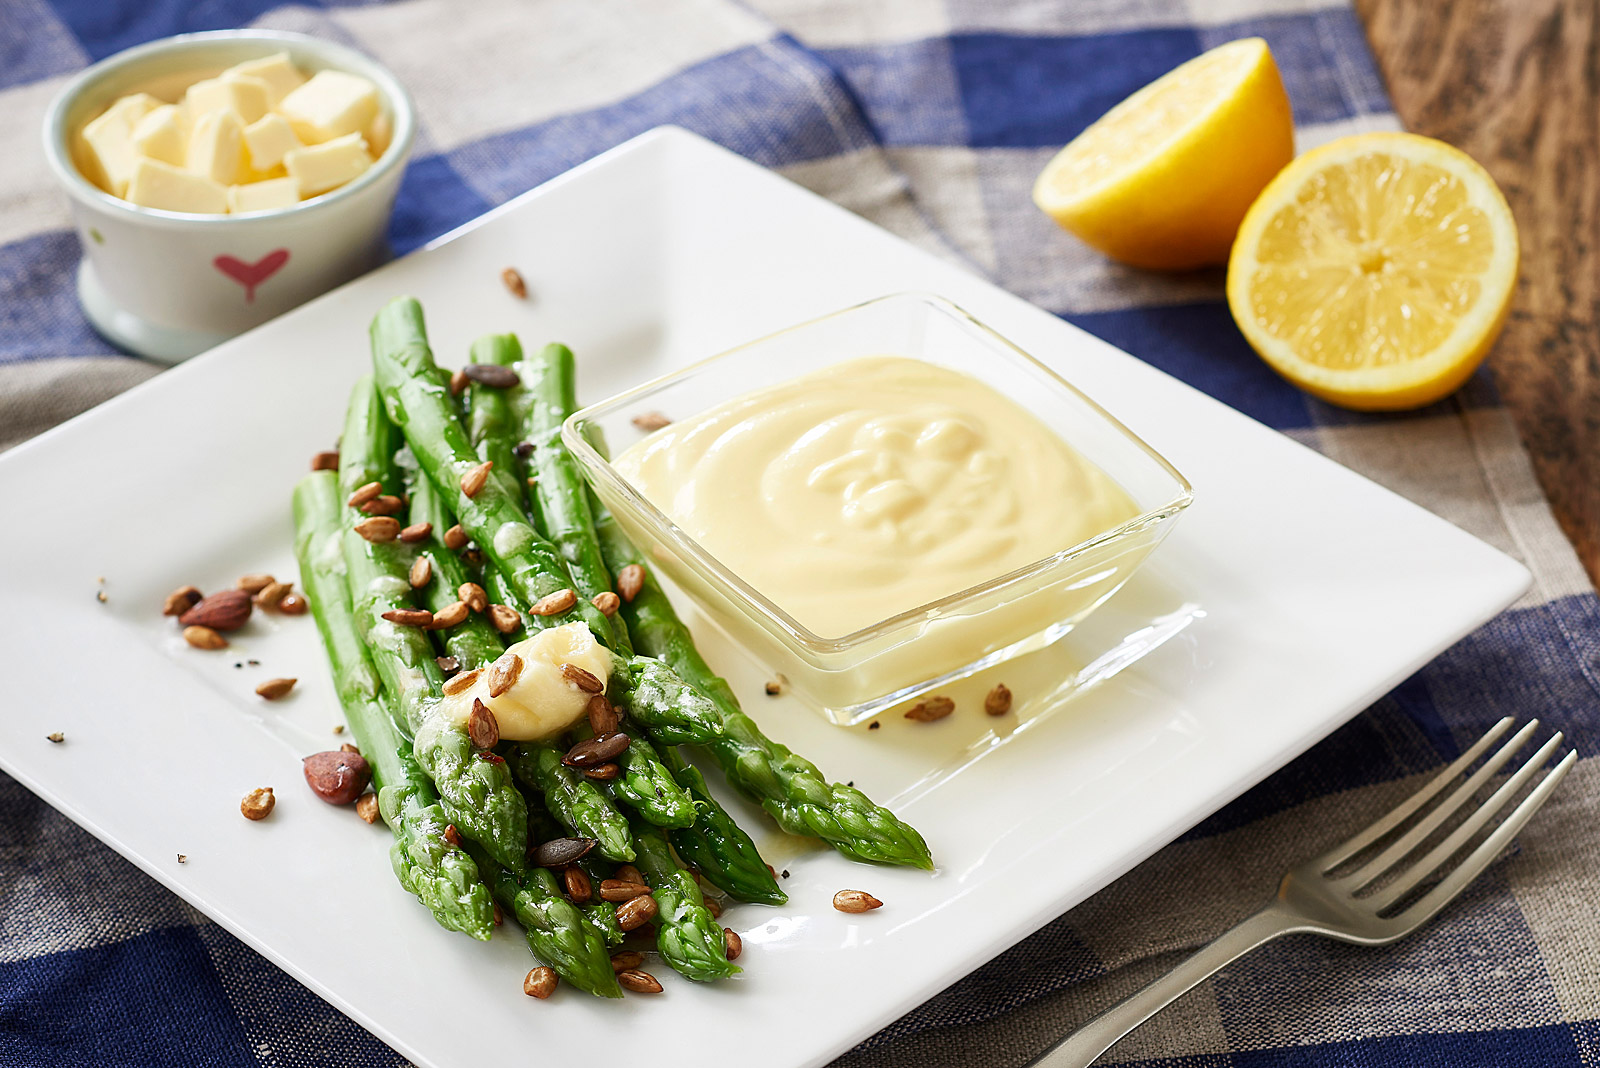 Munchy Seeds asparagus with butter